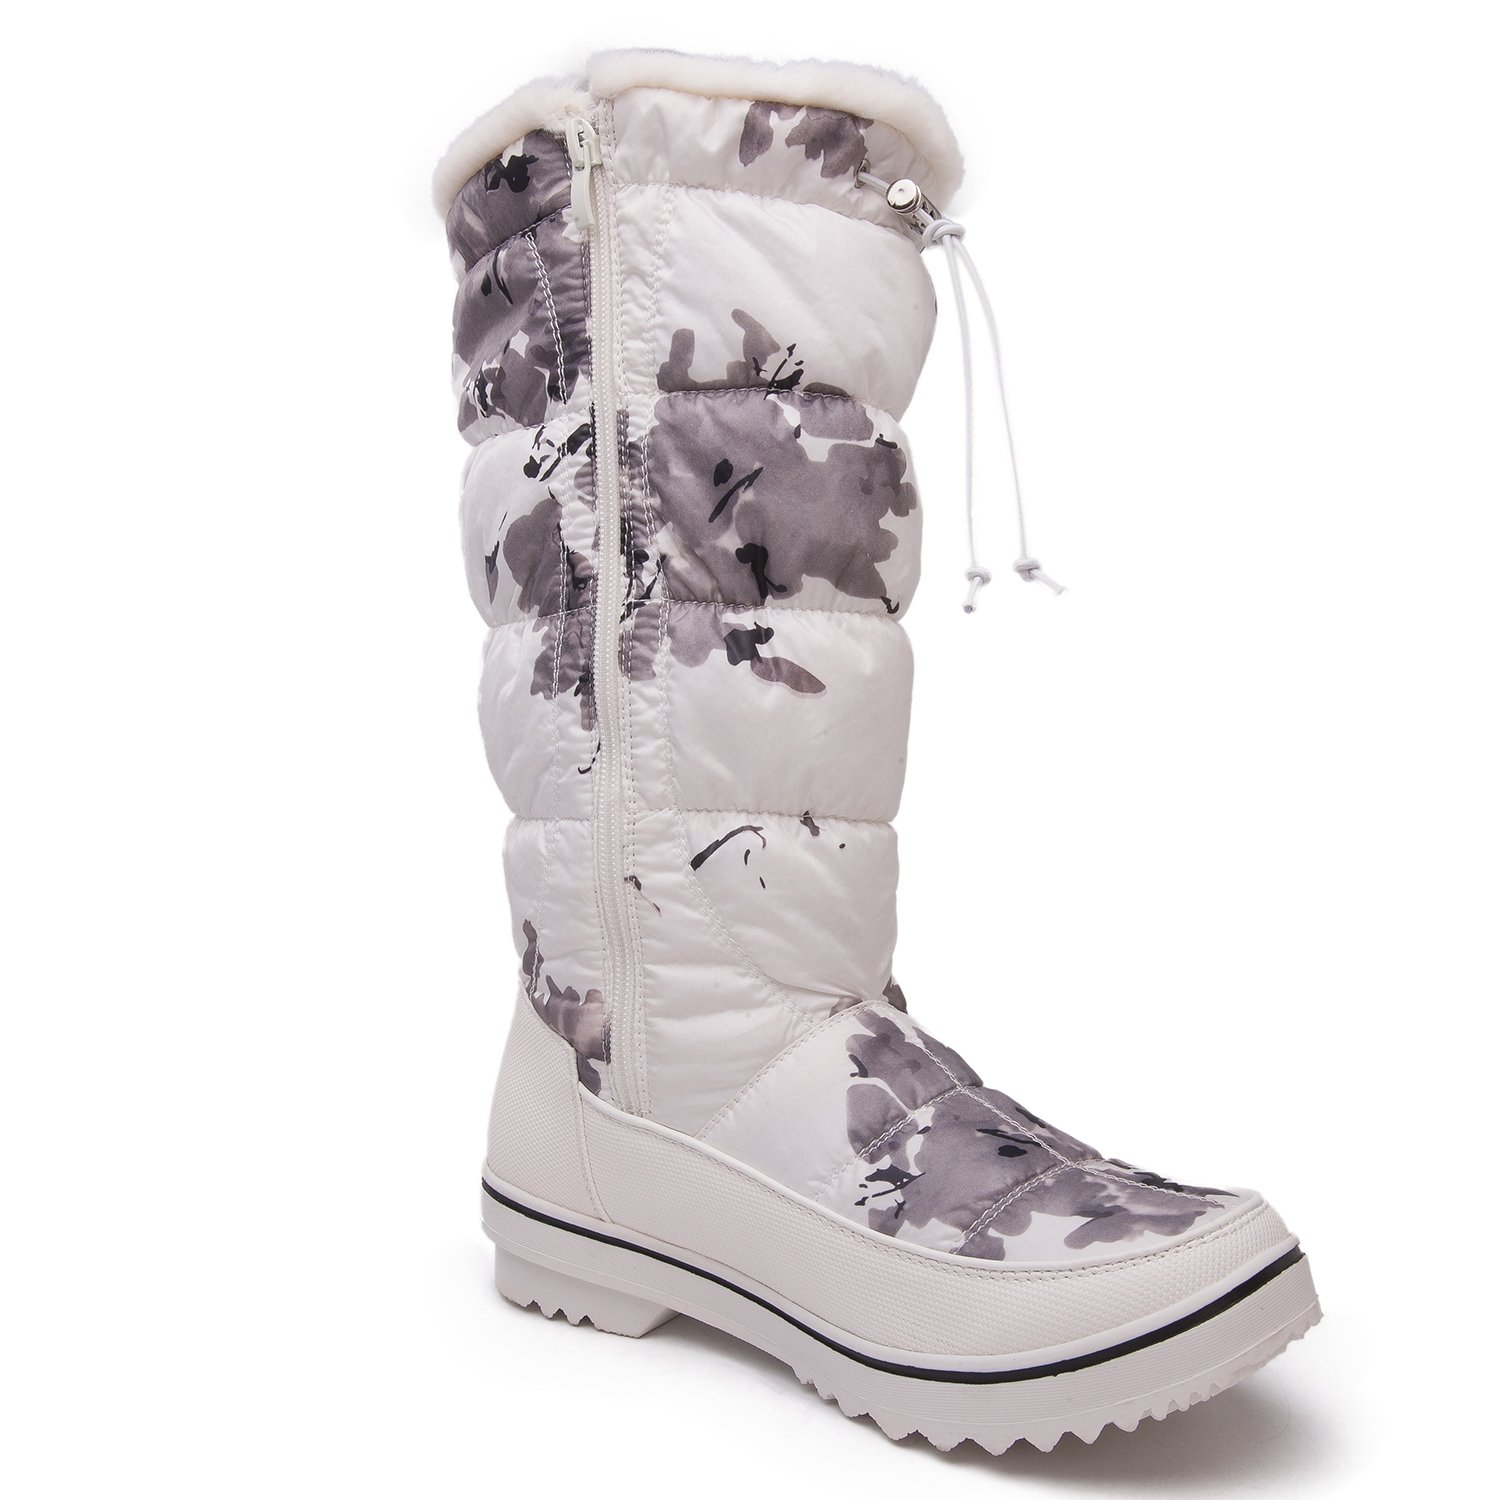 GW Women's 1713 White Camouflage Snow Boots 9 M US by Global Win (Image #2)